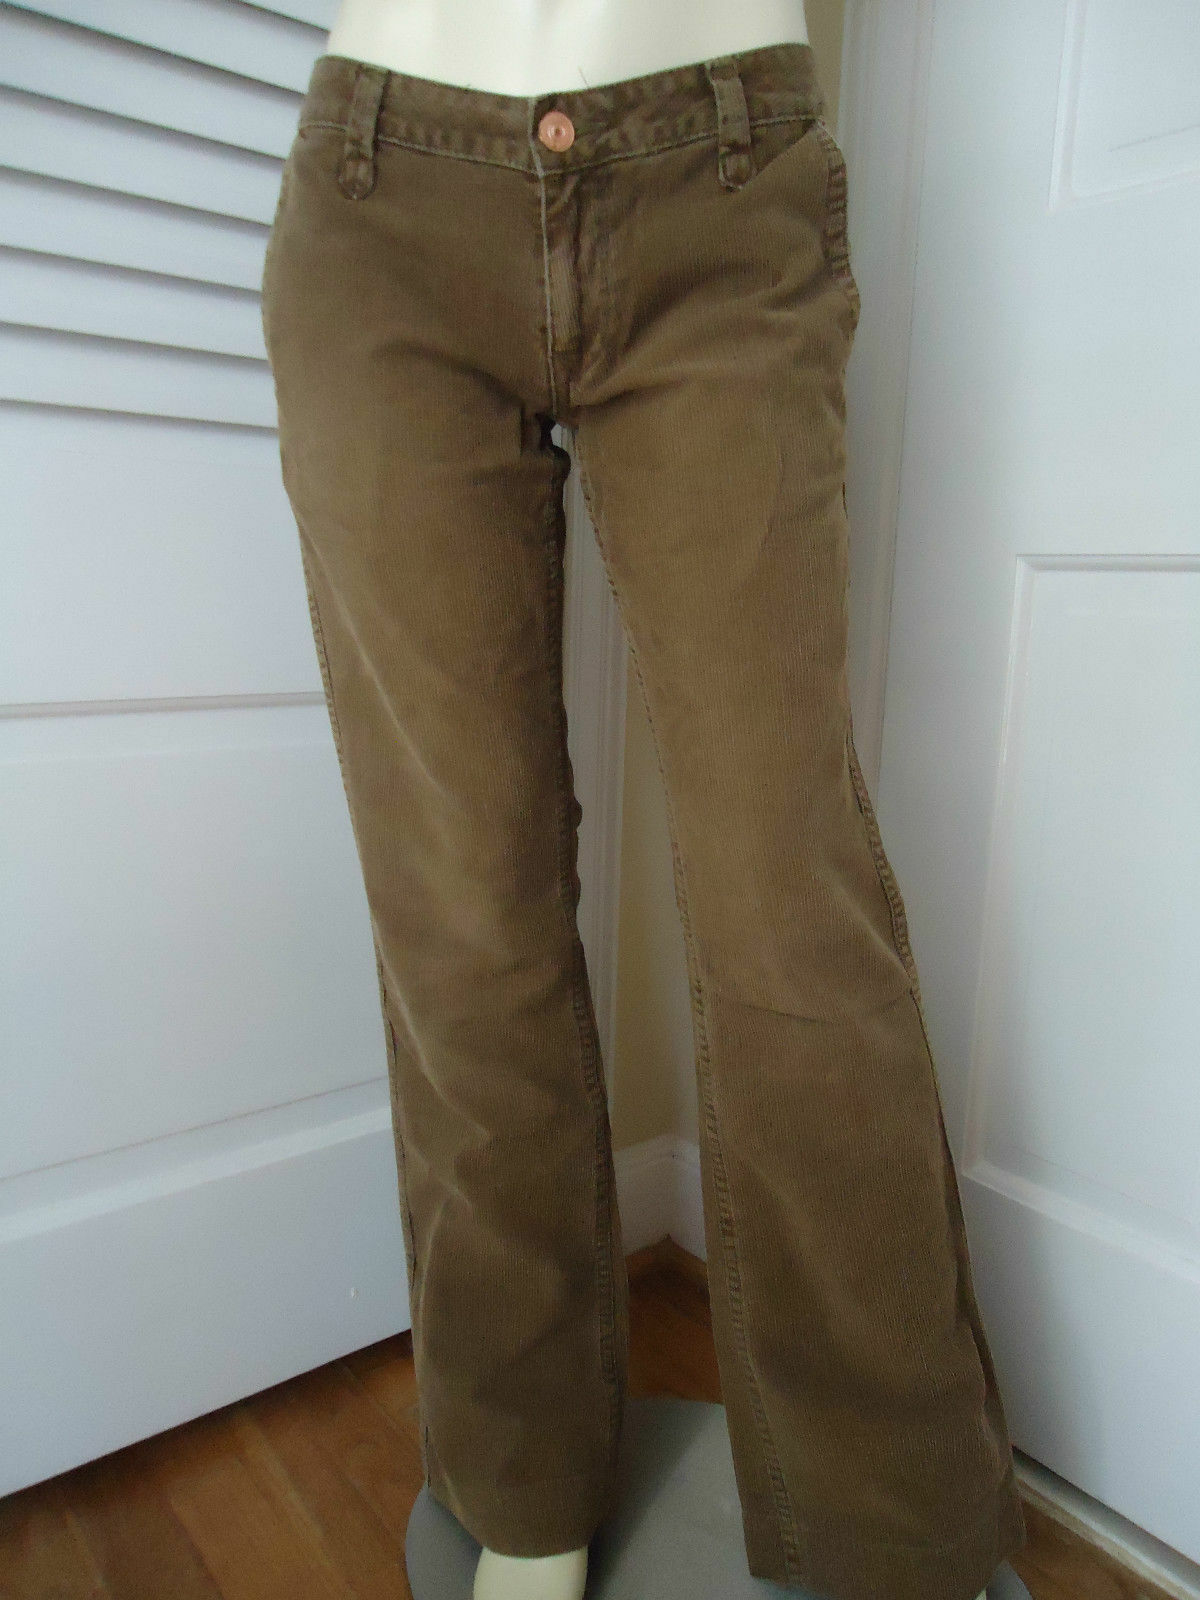 Earnest Sewn Pants 27 Brown Cotton Corduroy Low Rise Button Zip Front